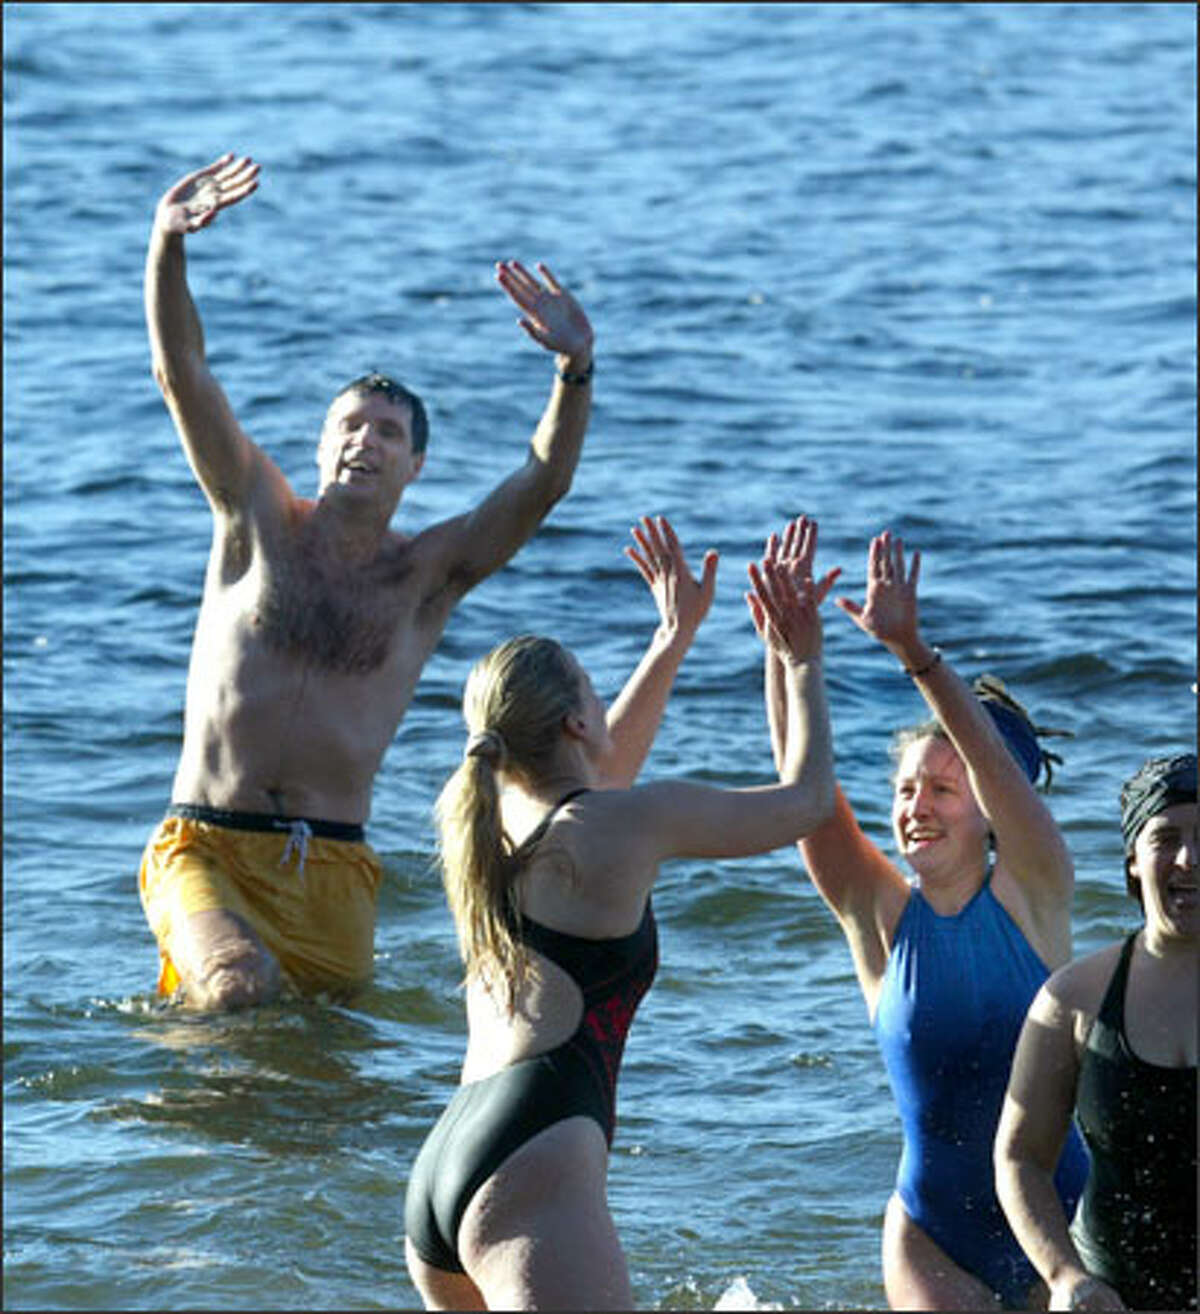 Students and faculty, including Scott Murdoch, left, and Eliza Carlson, right, take a dip in Lake Washington to kick off the start of winter quarter at Bastyr University in Kenmore. The